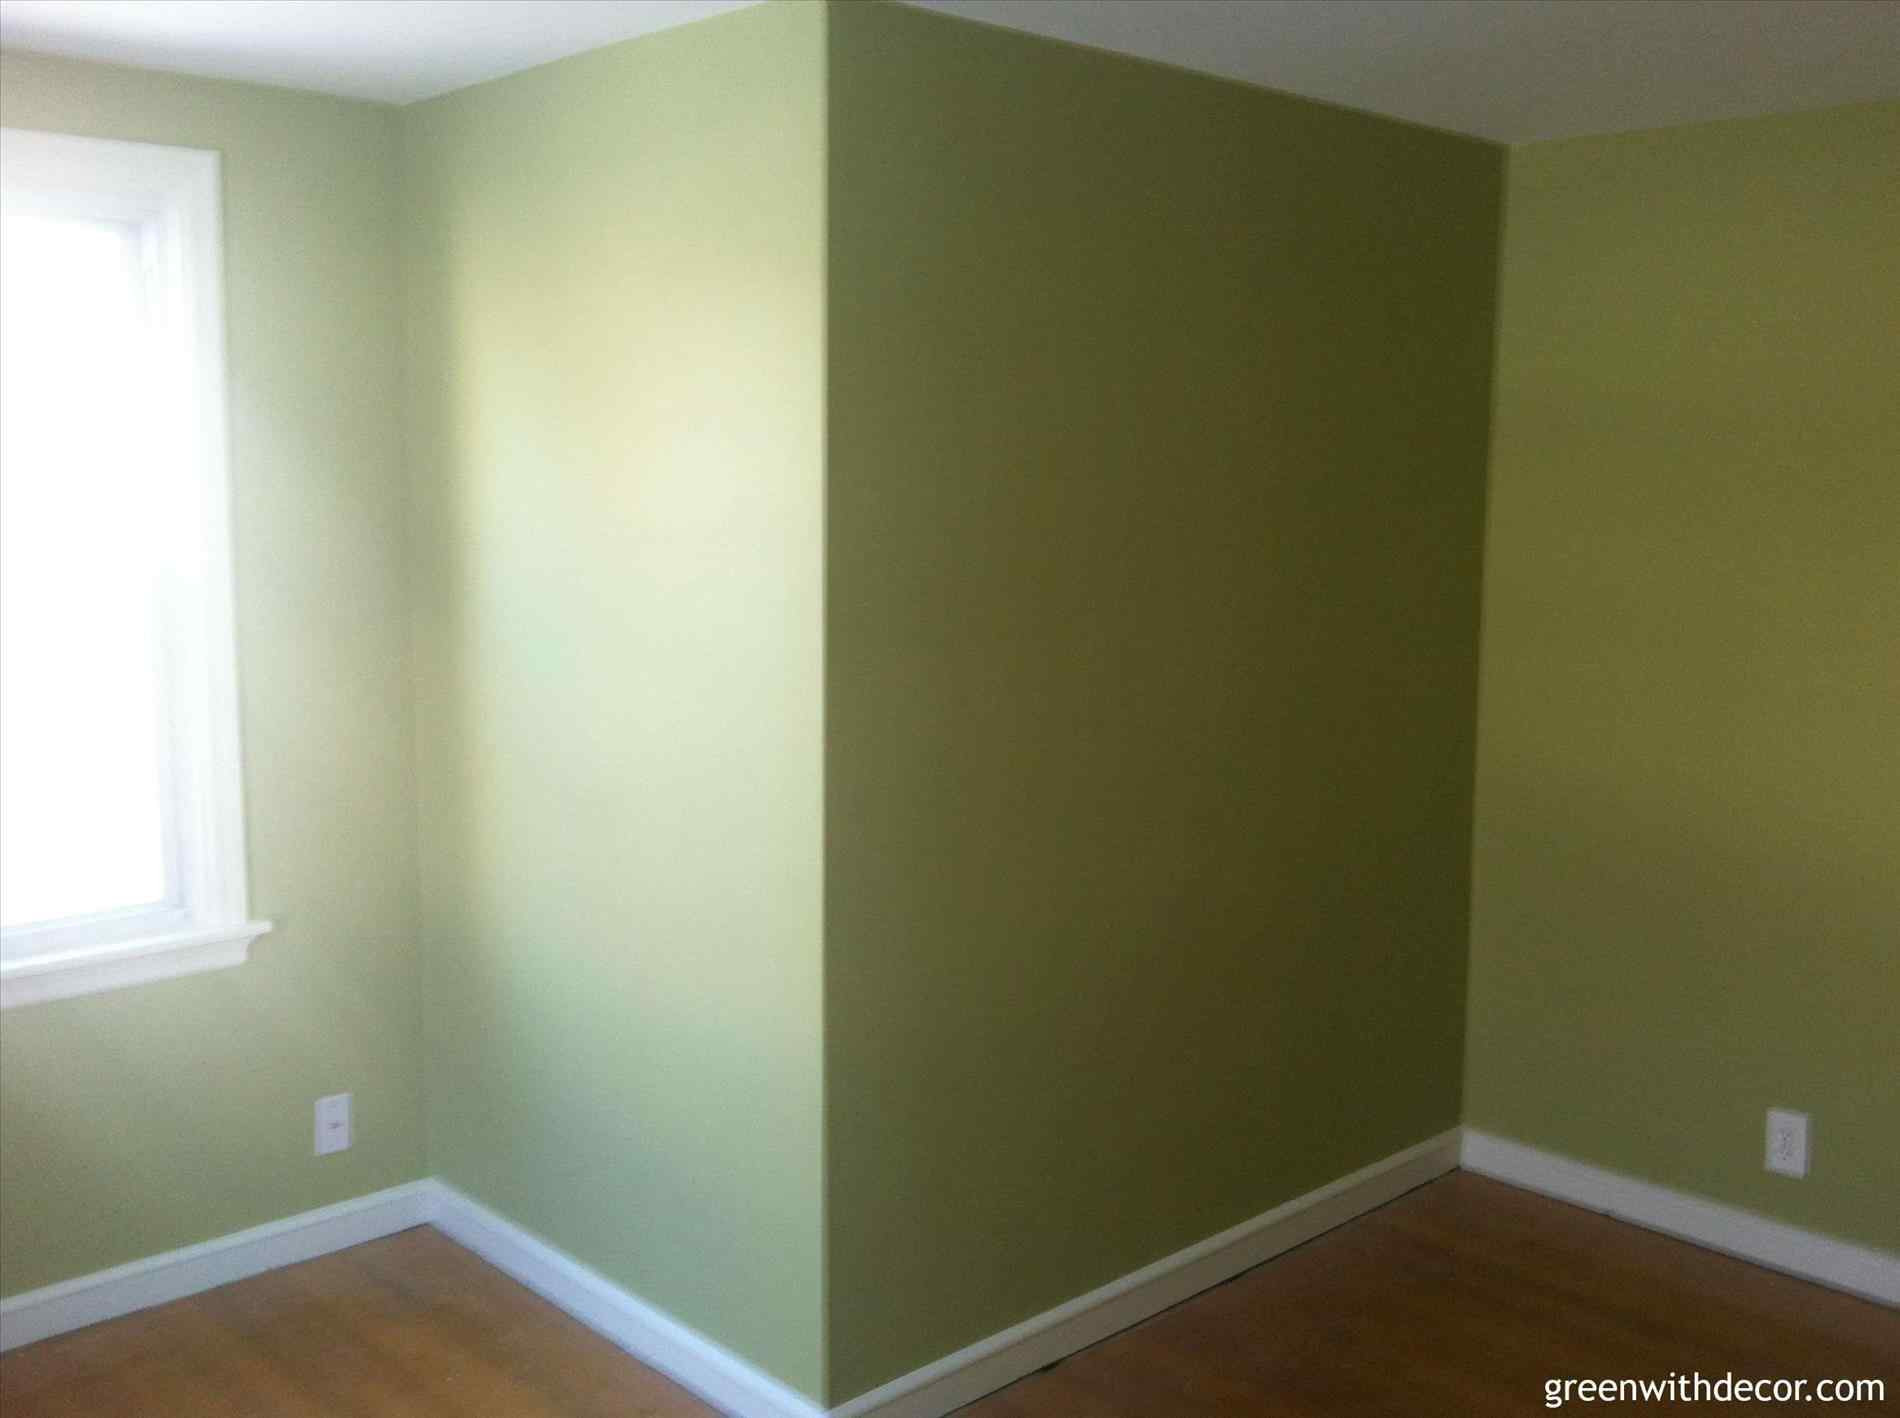 Best ideas about Floor Paint Colors . Save or Pin Sherwin Williams Floor Paint Colors Now.